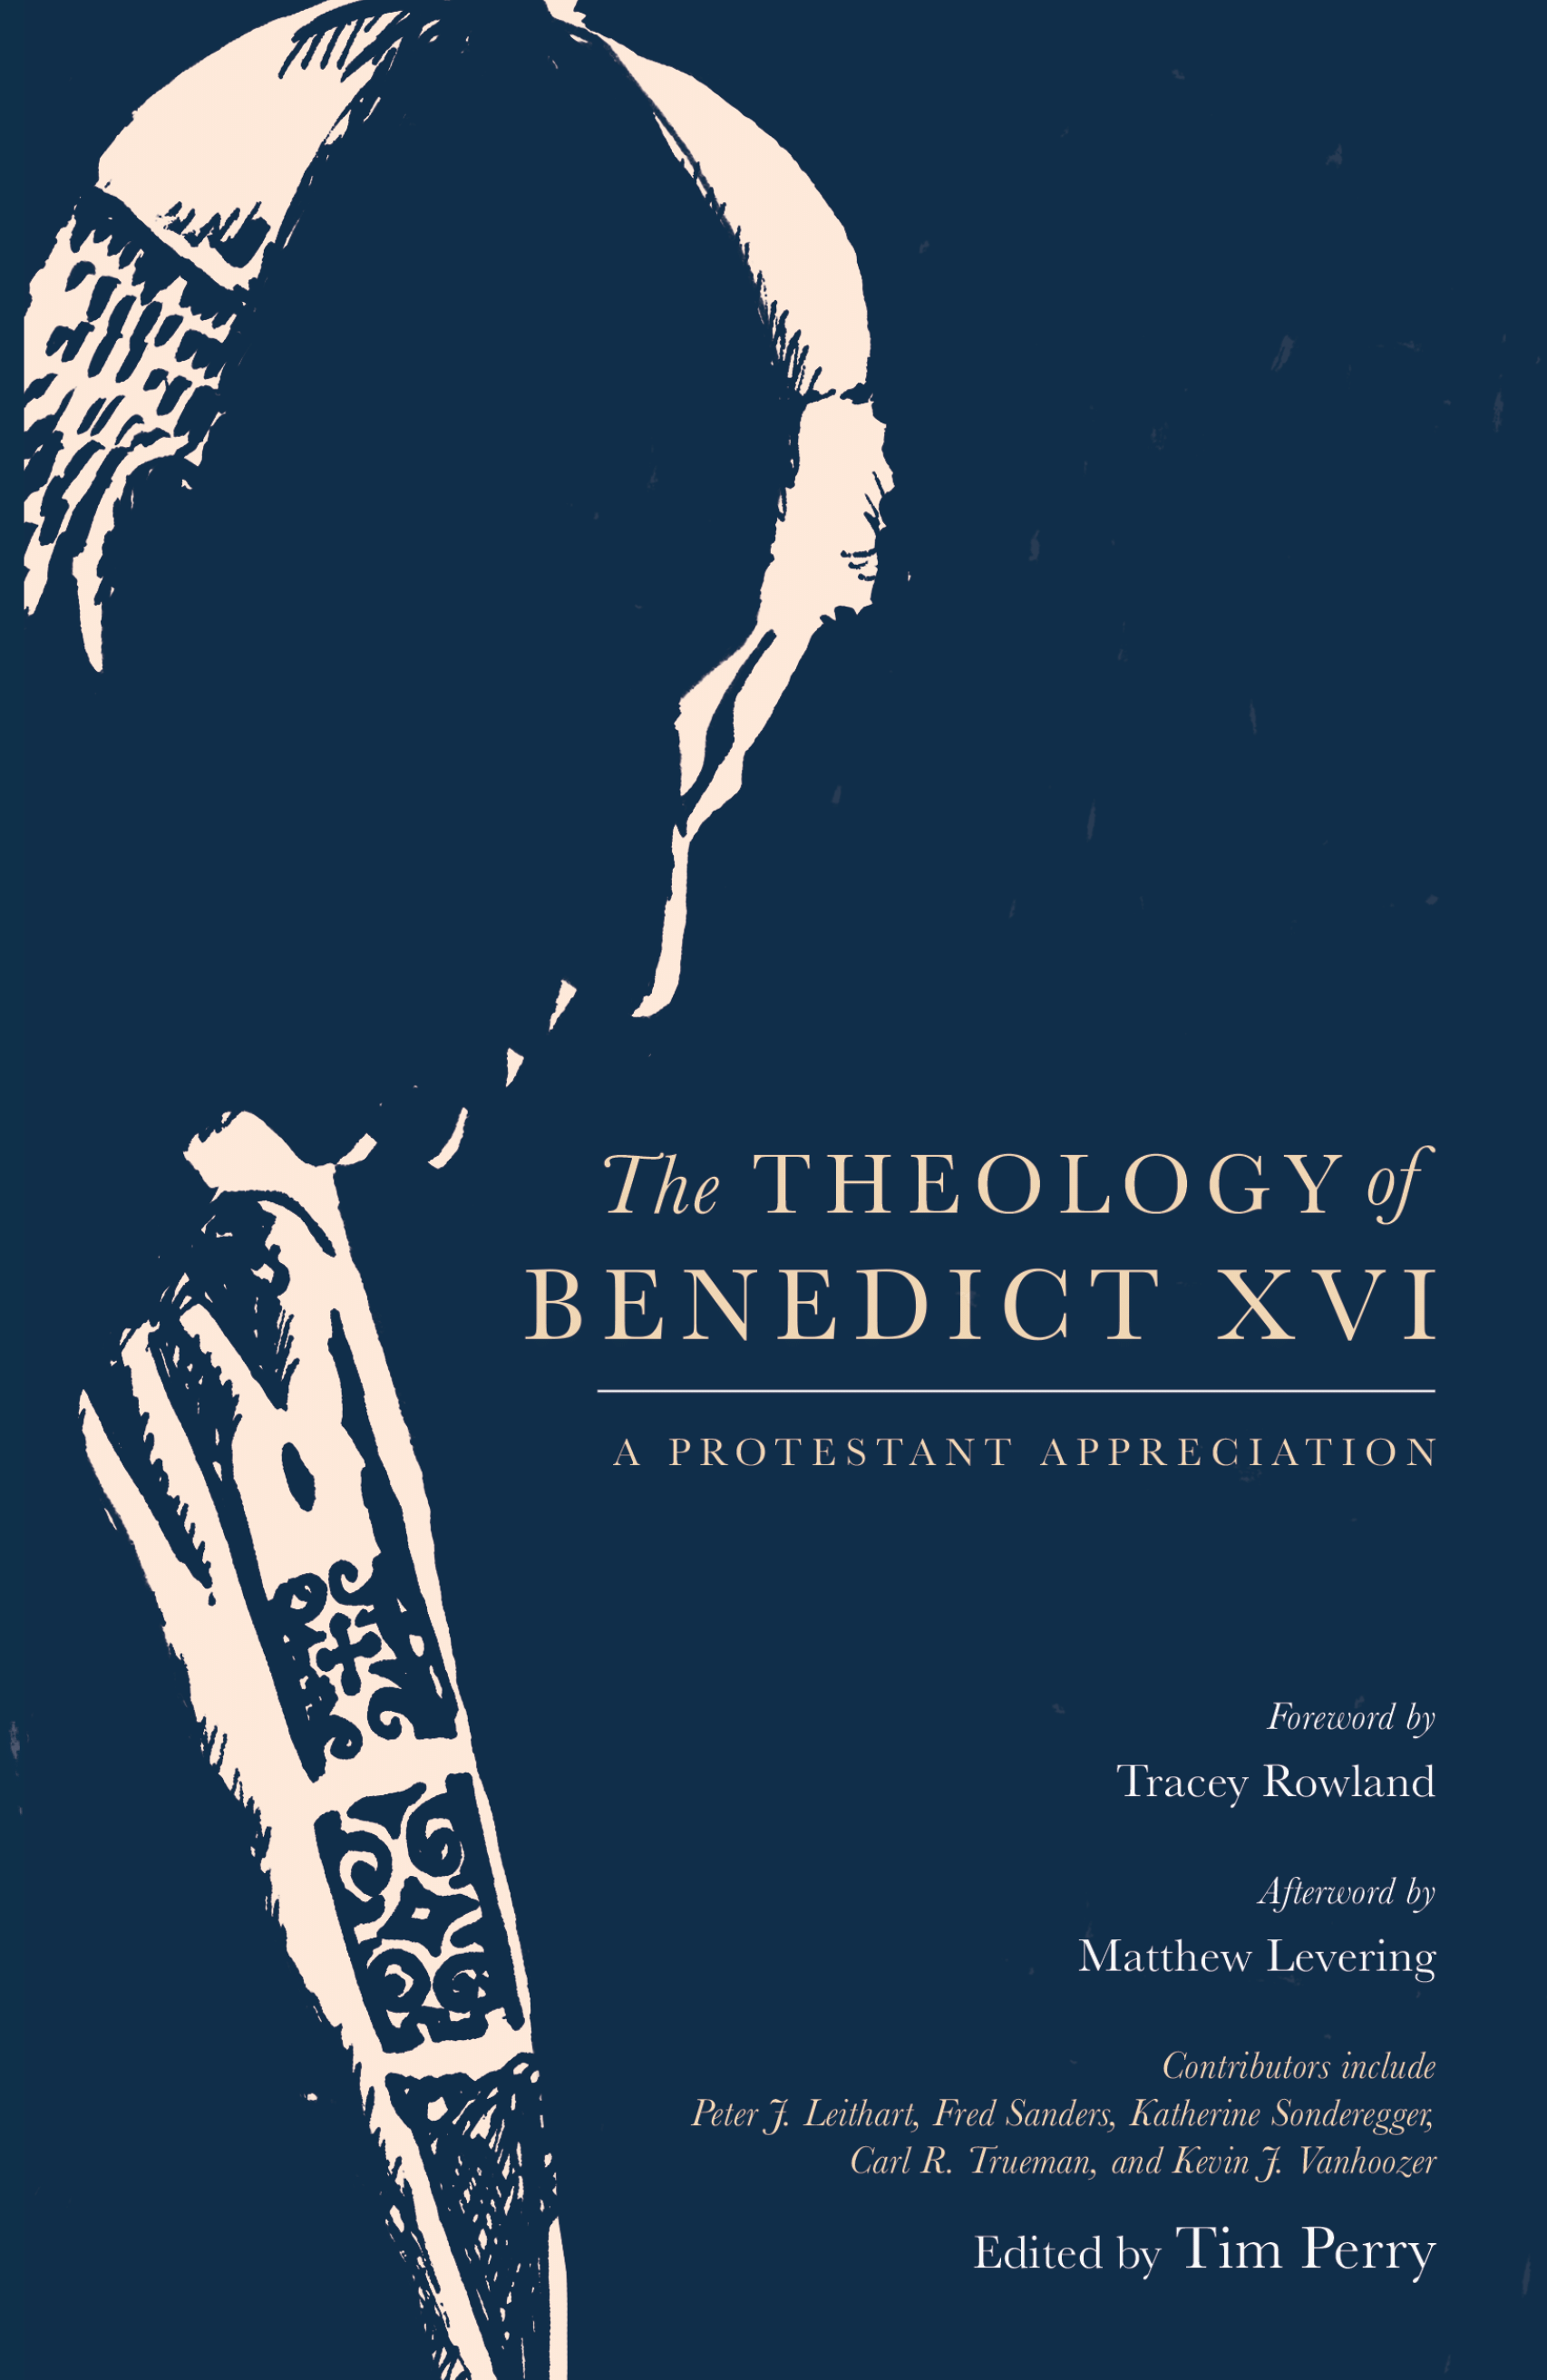 The Theology of Benedict XVI: A Protestant Appreciation